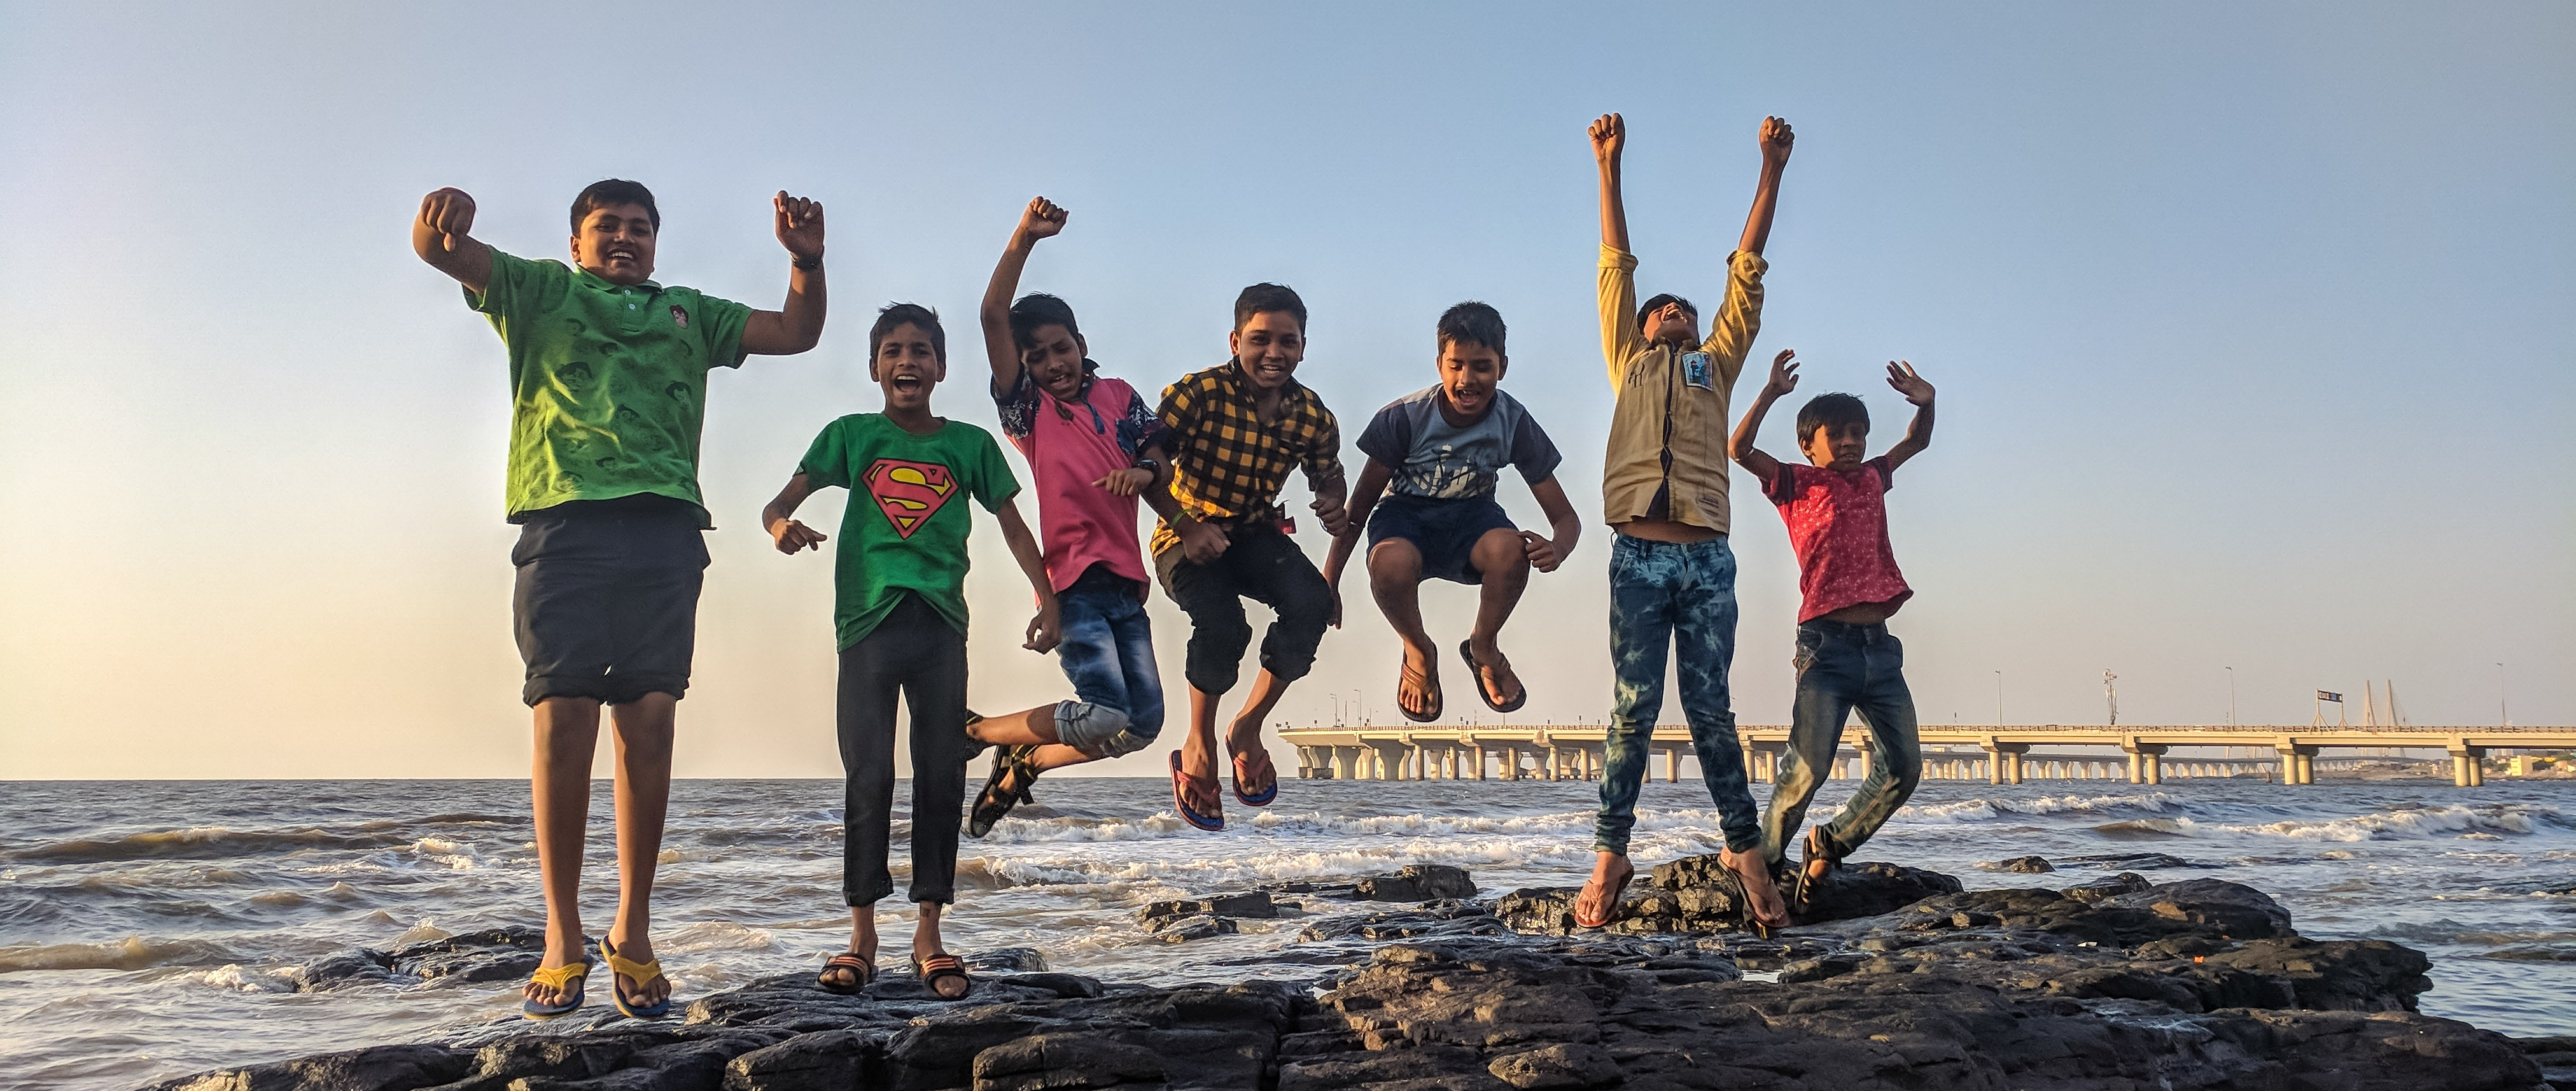 Group of children jumping and celebrating by the ocean